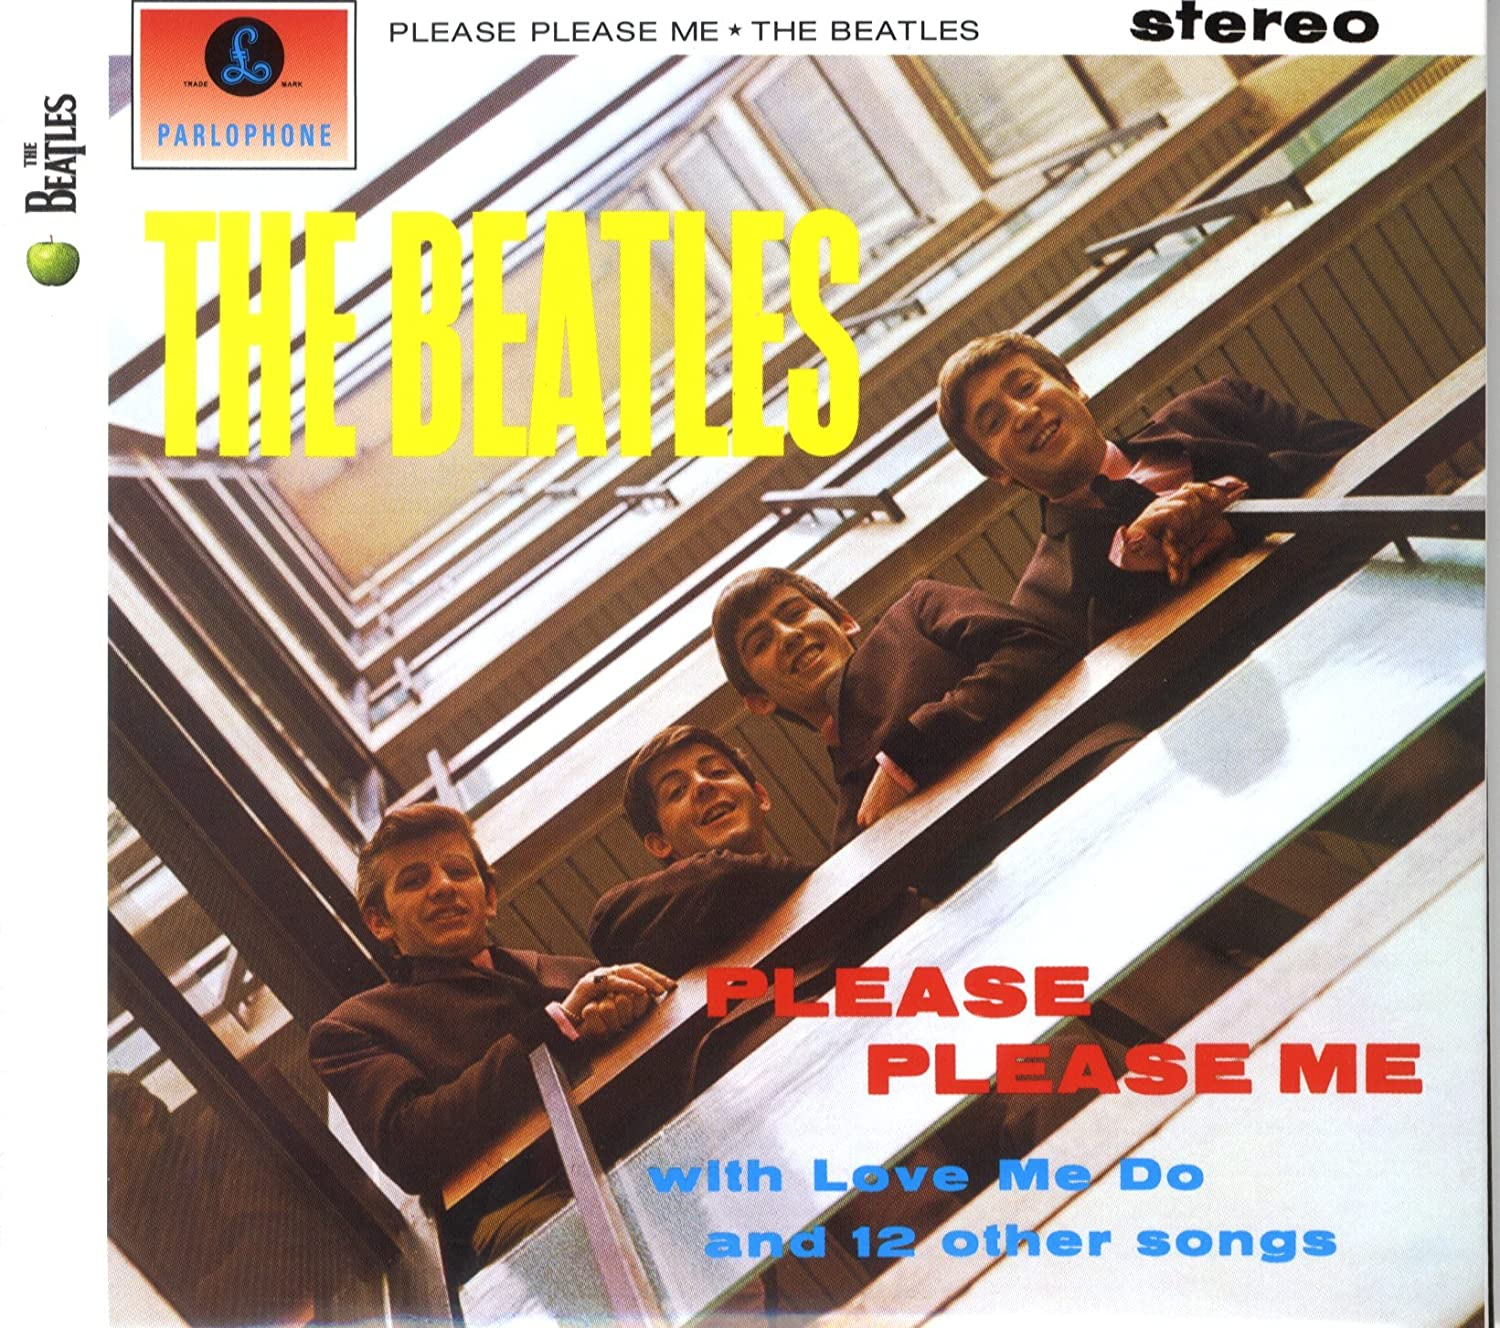 「please please me the beatles」の画像検索結果